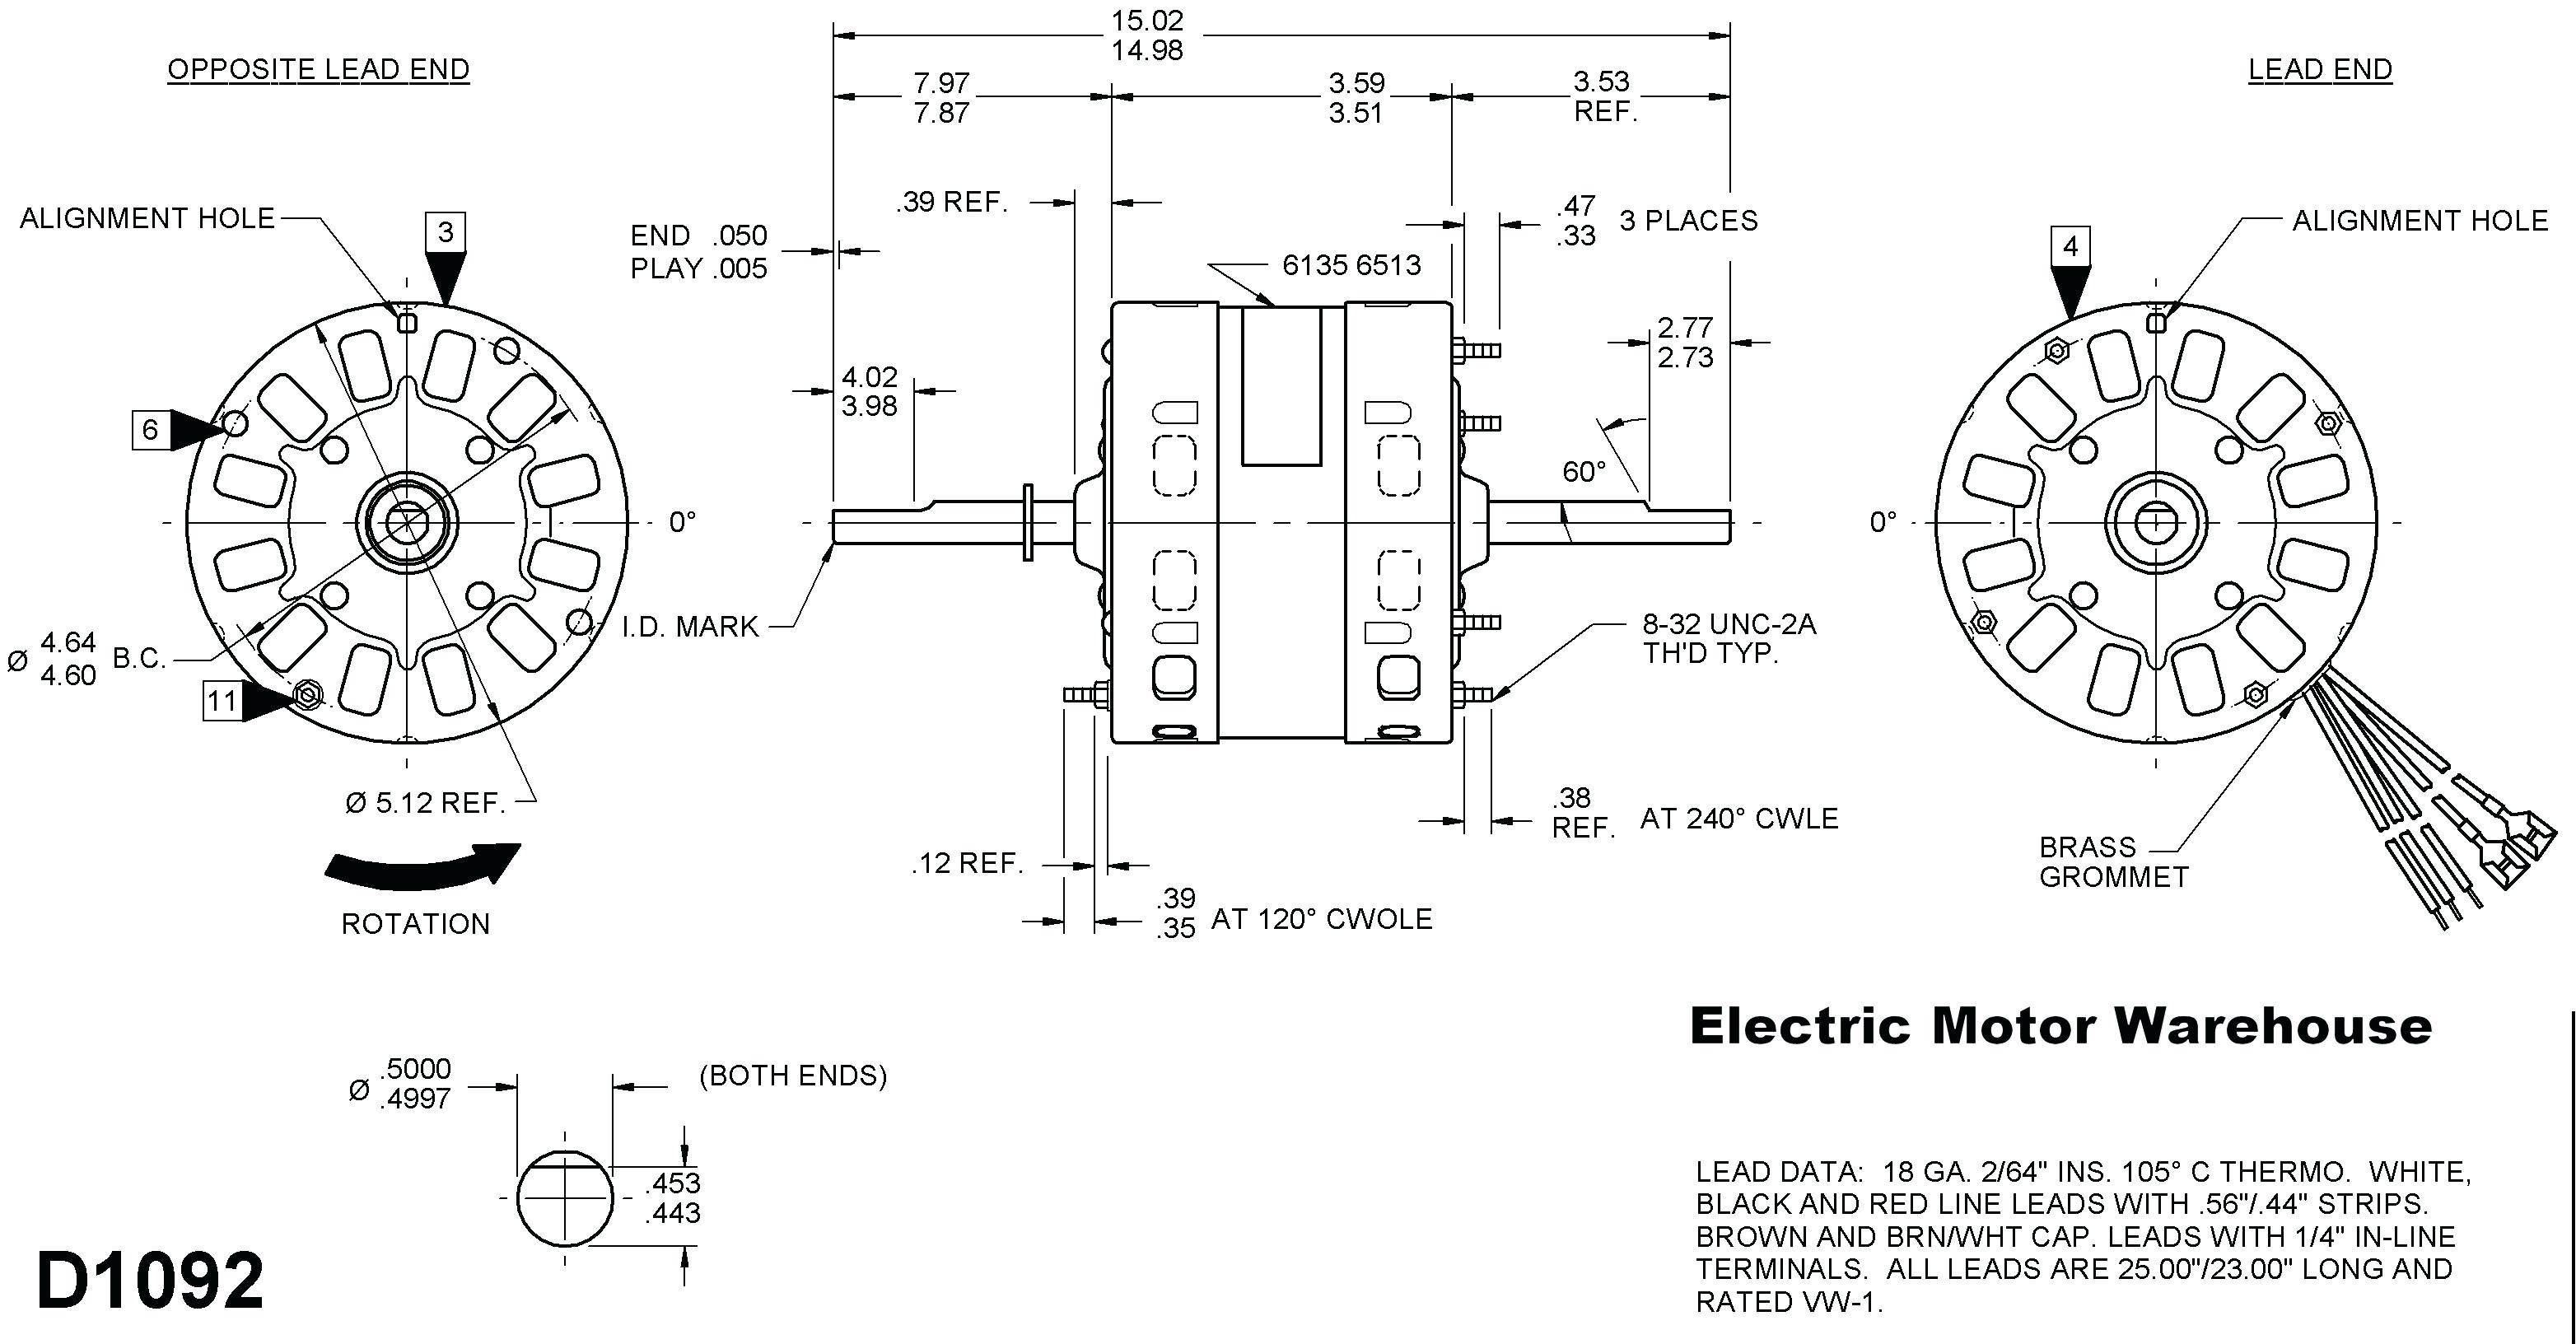 fasco blower motor wiring diagram Collection-Wiring Diagram For Fasco Blower Motor Valid Fasco Blower Motor Wiring Diagram Wiring Diagrams Schematics 11-g